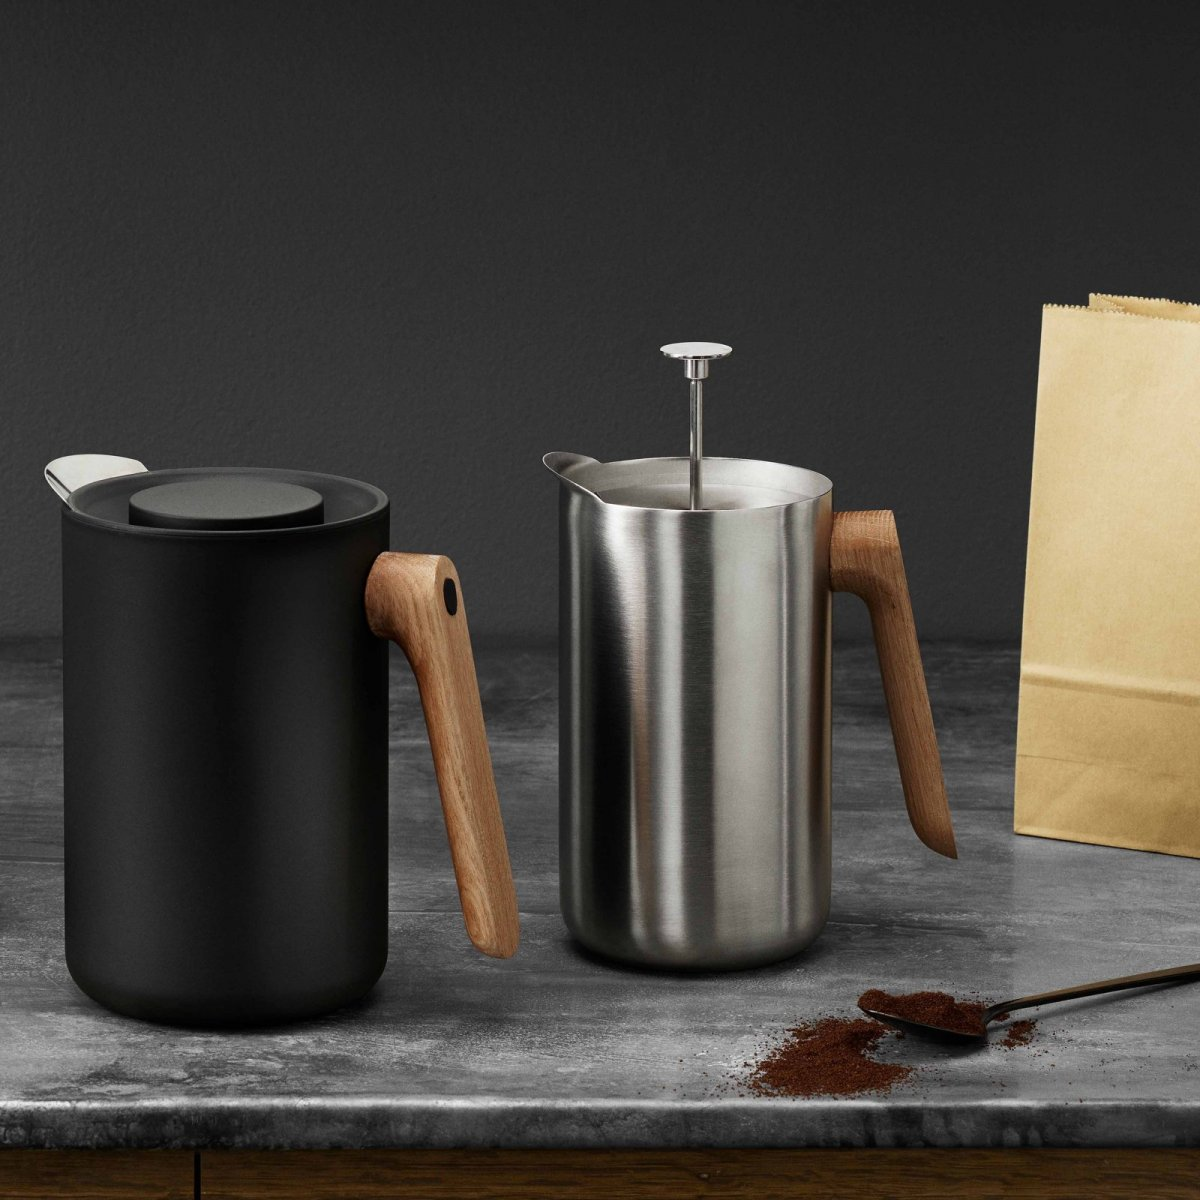 Nordic Kitchen Thermo Cafetiére and Vacuum Jug.